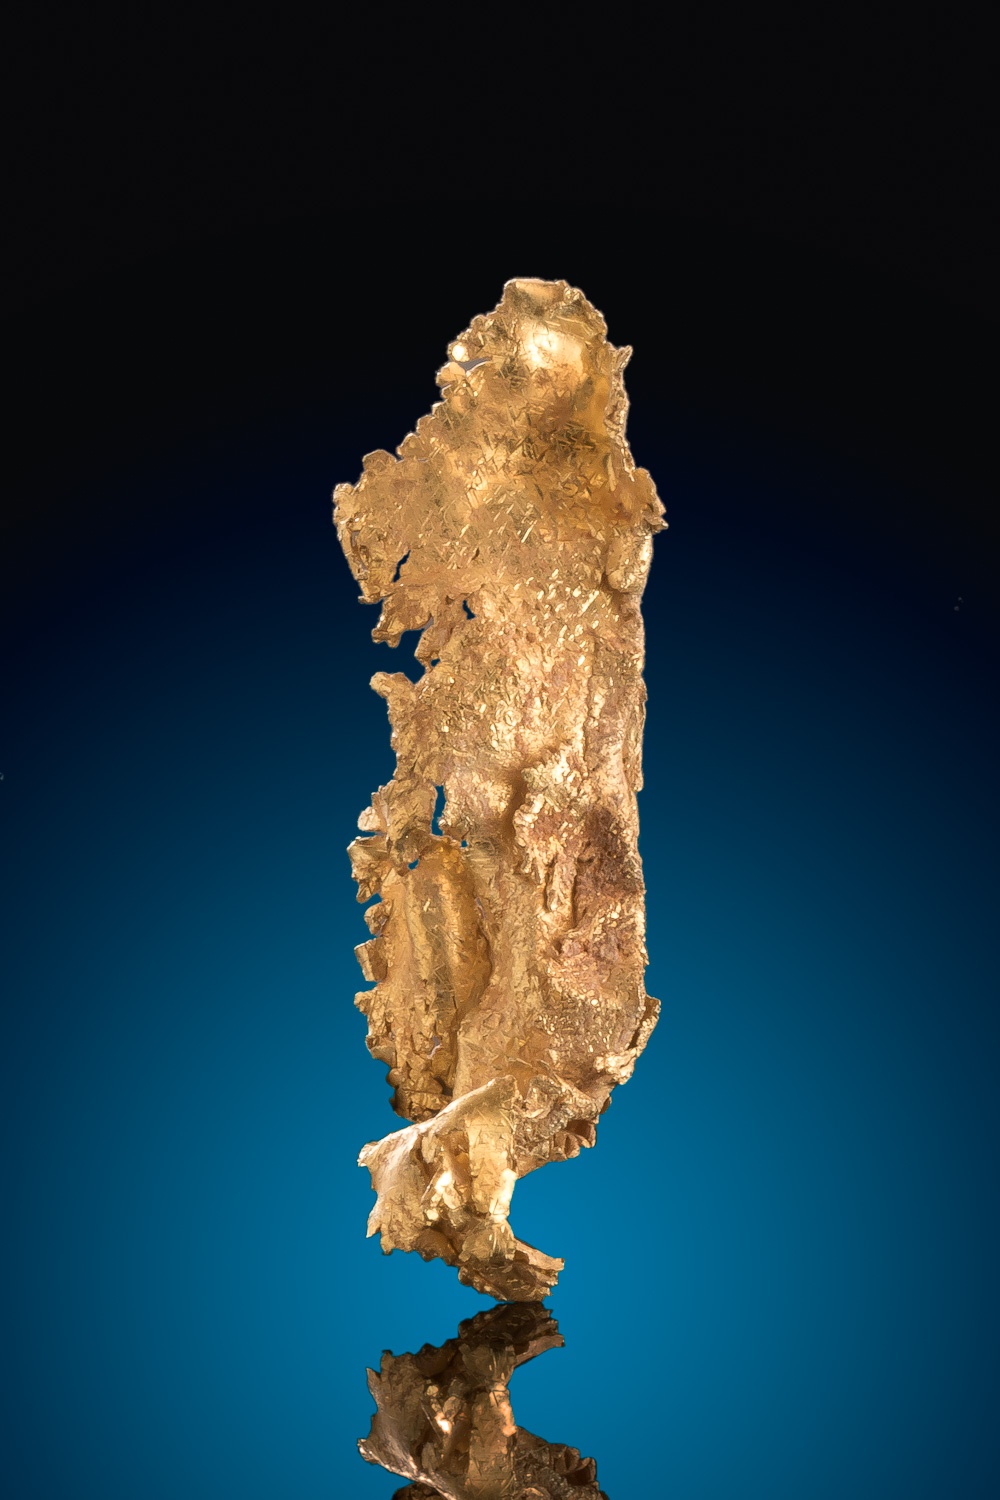 Long and Intricate Gold Nugget Crystal Specimen - Round Mountain